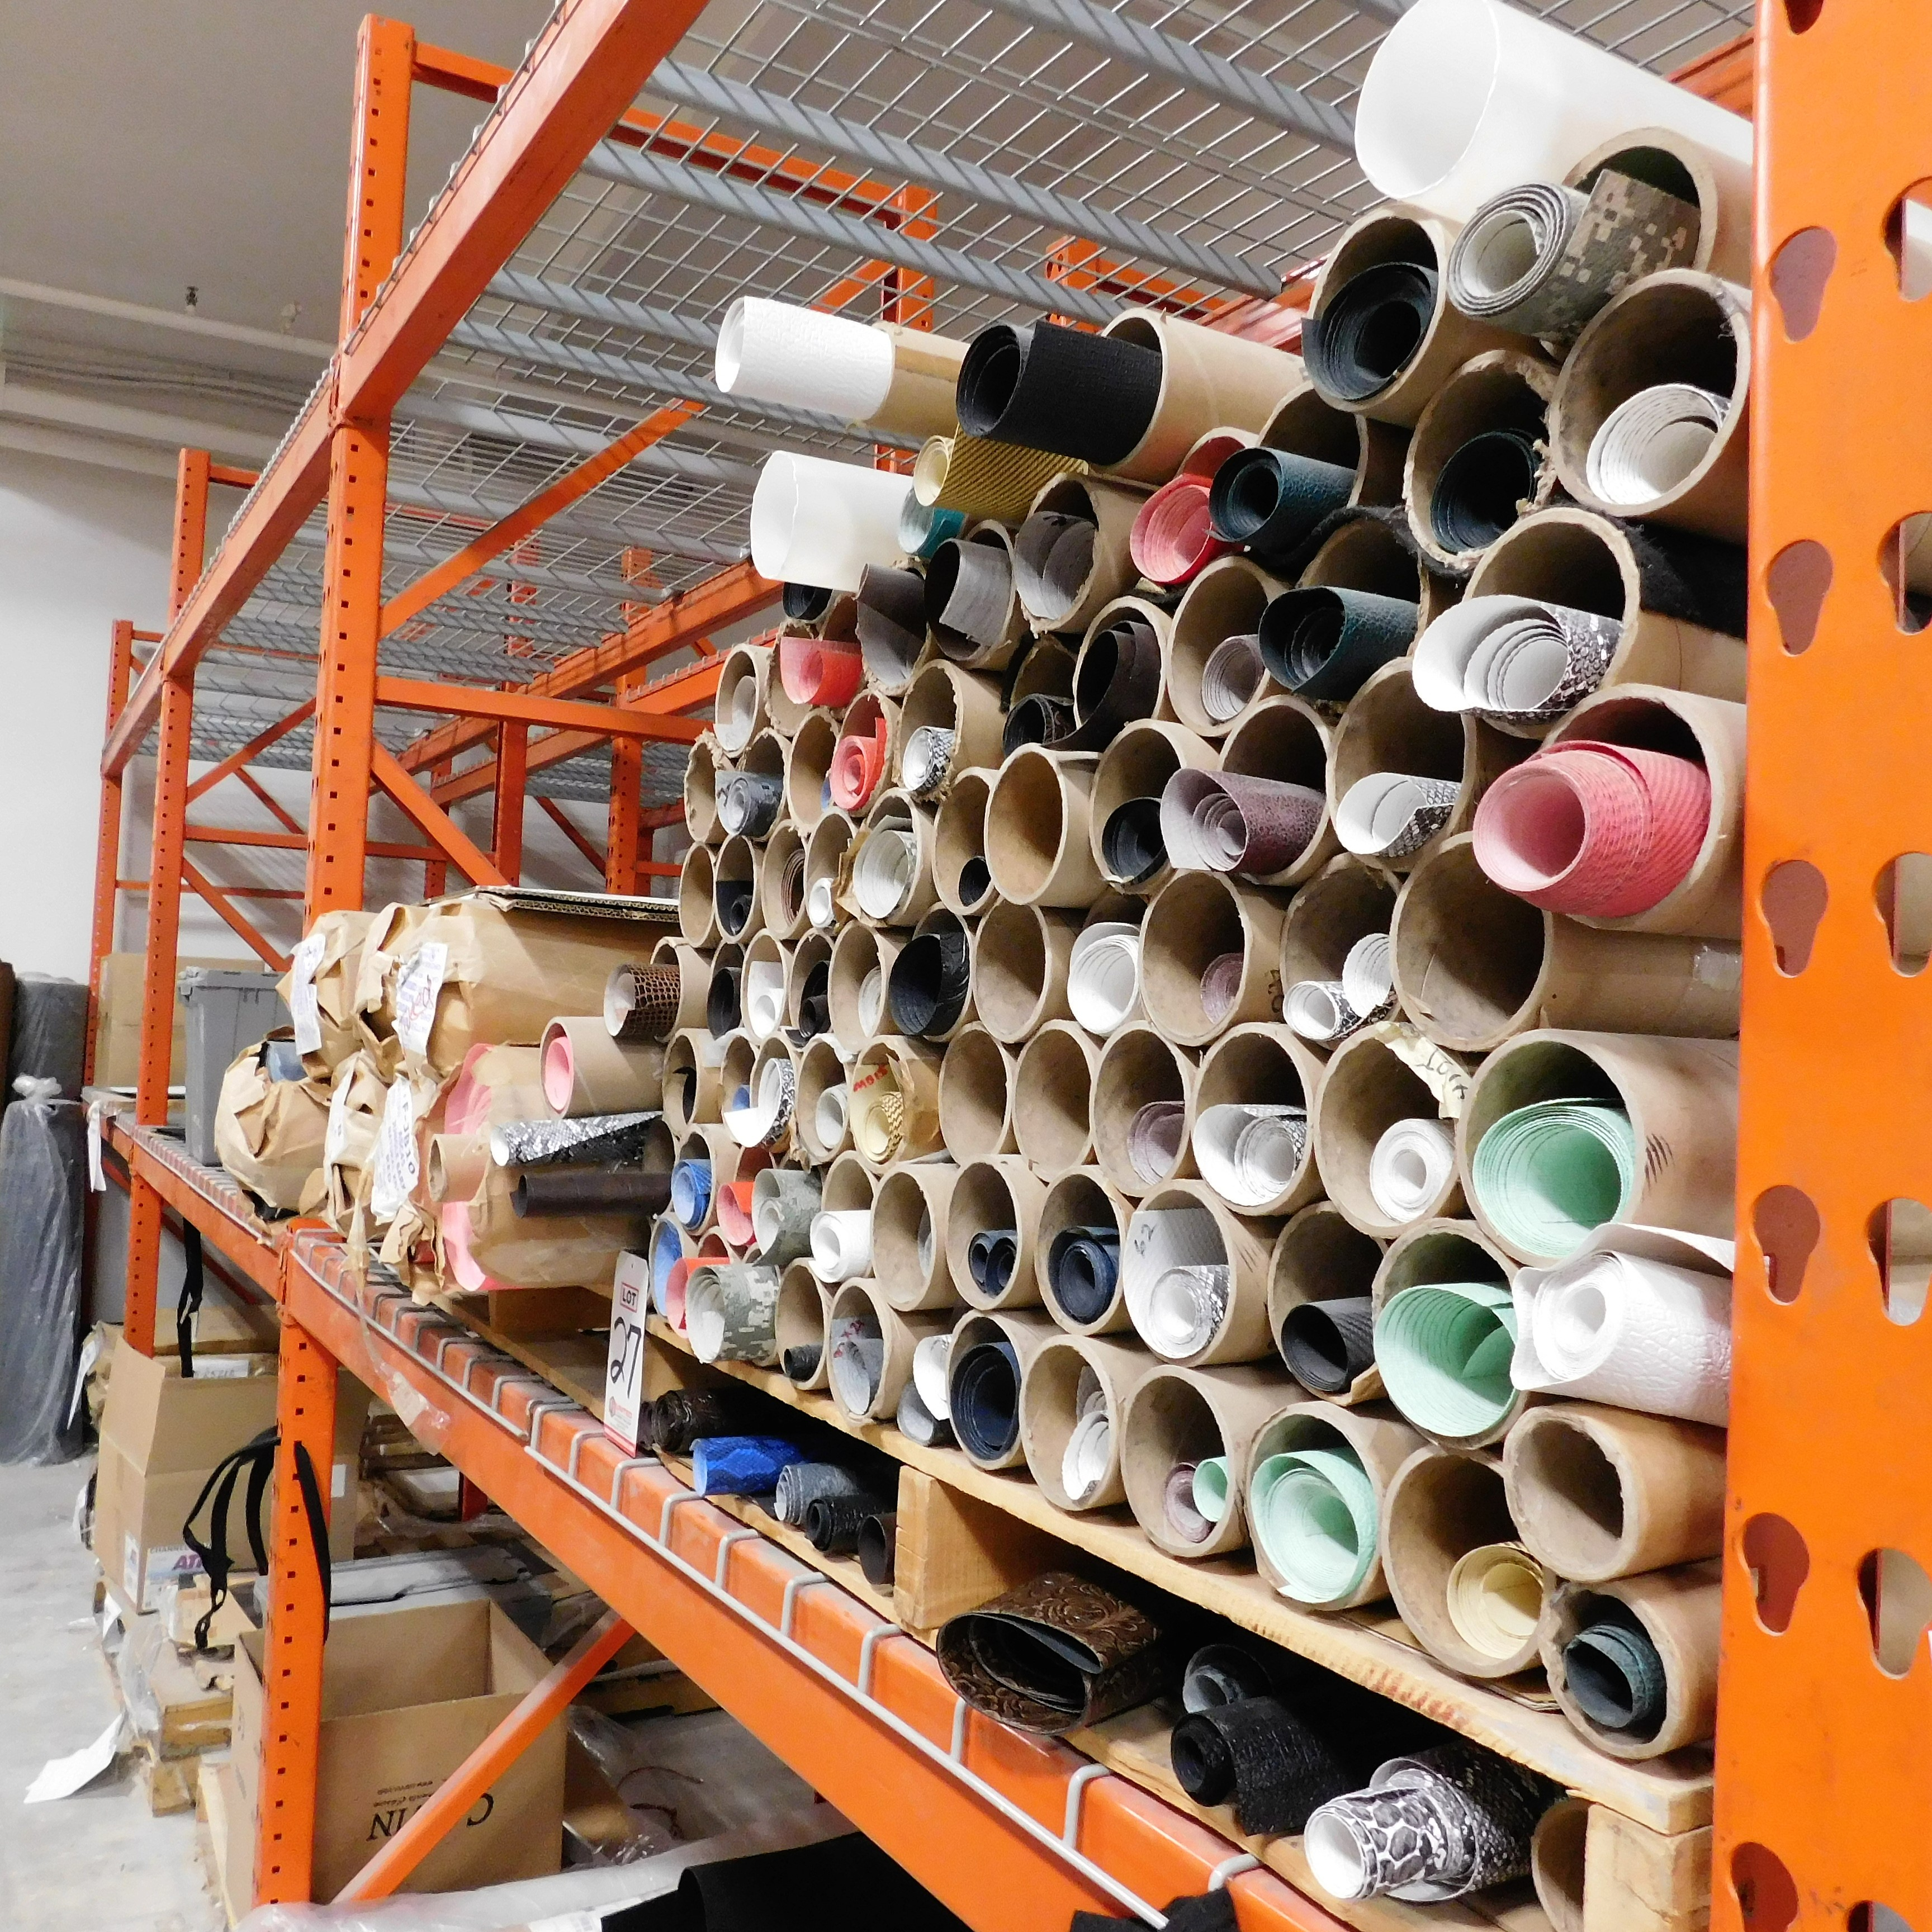 """Lot 27 - LOT - (2) PALLETS OF VINYL ROLLS IN NUMEROUS COLORS AND PRINTS, TYPICAL ROLL WIDTH IS 54"""""""